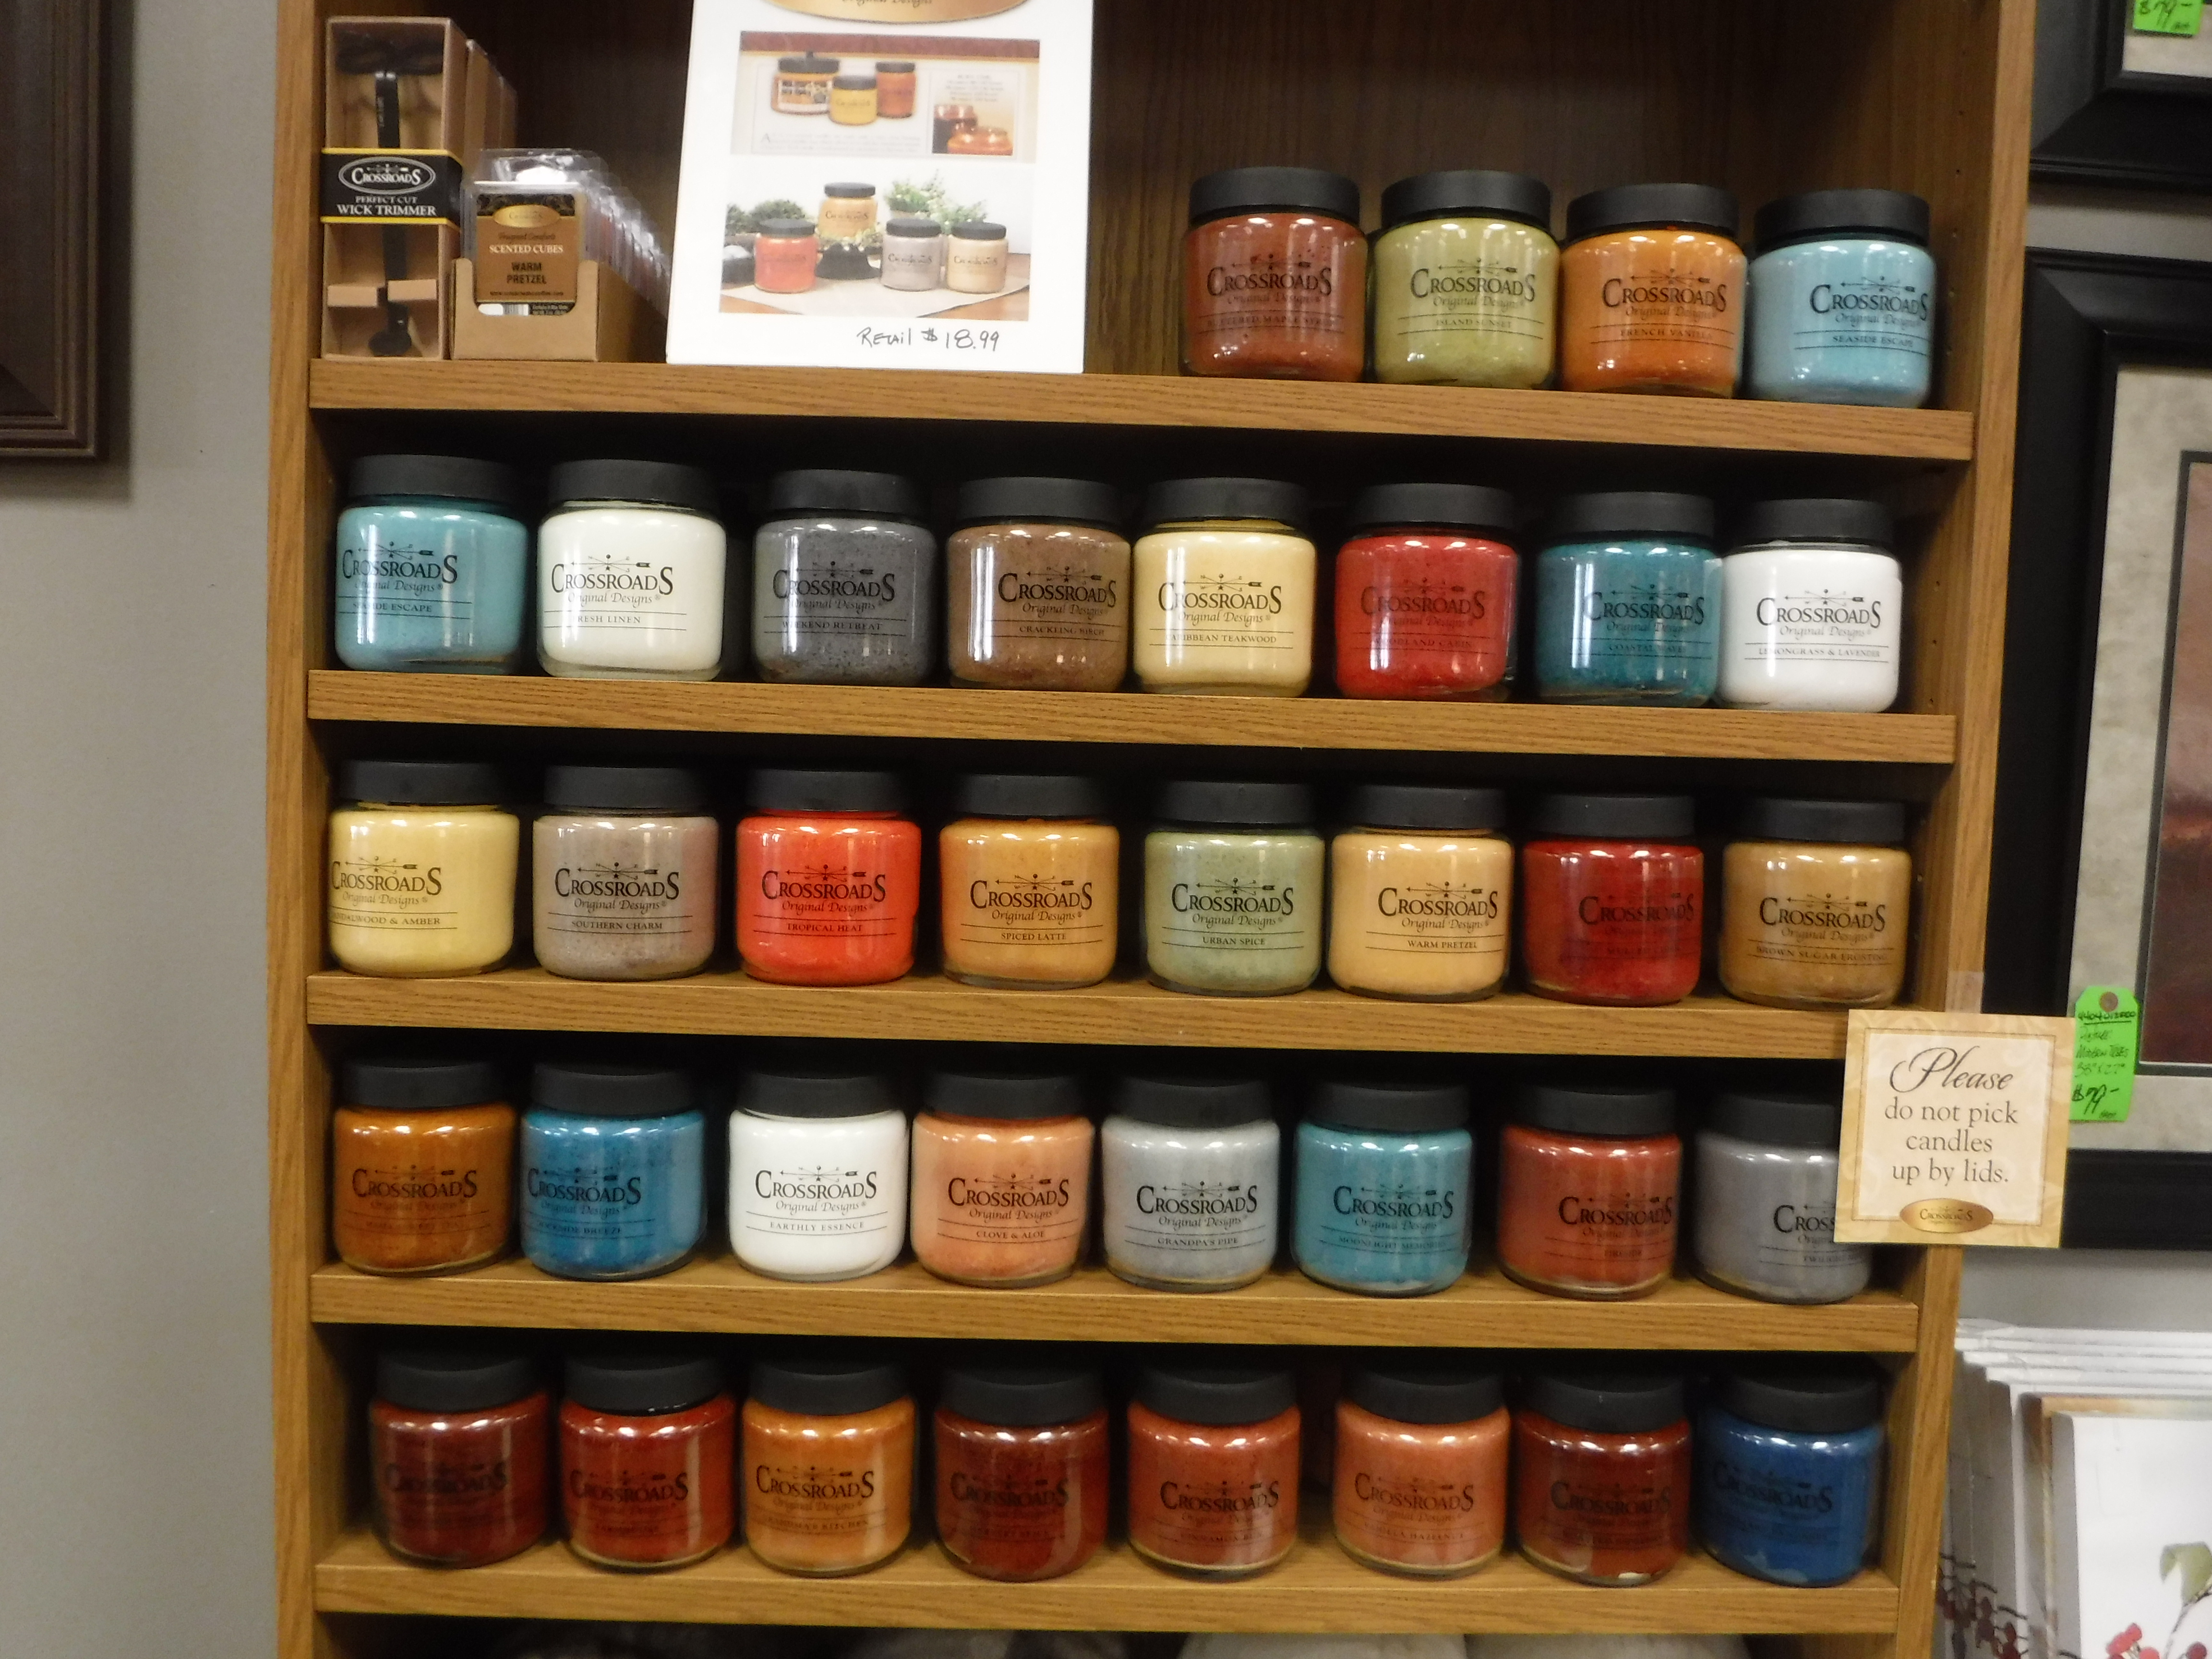 Crossroads Candles 16oz 80-100 Hours Burntime $18.99